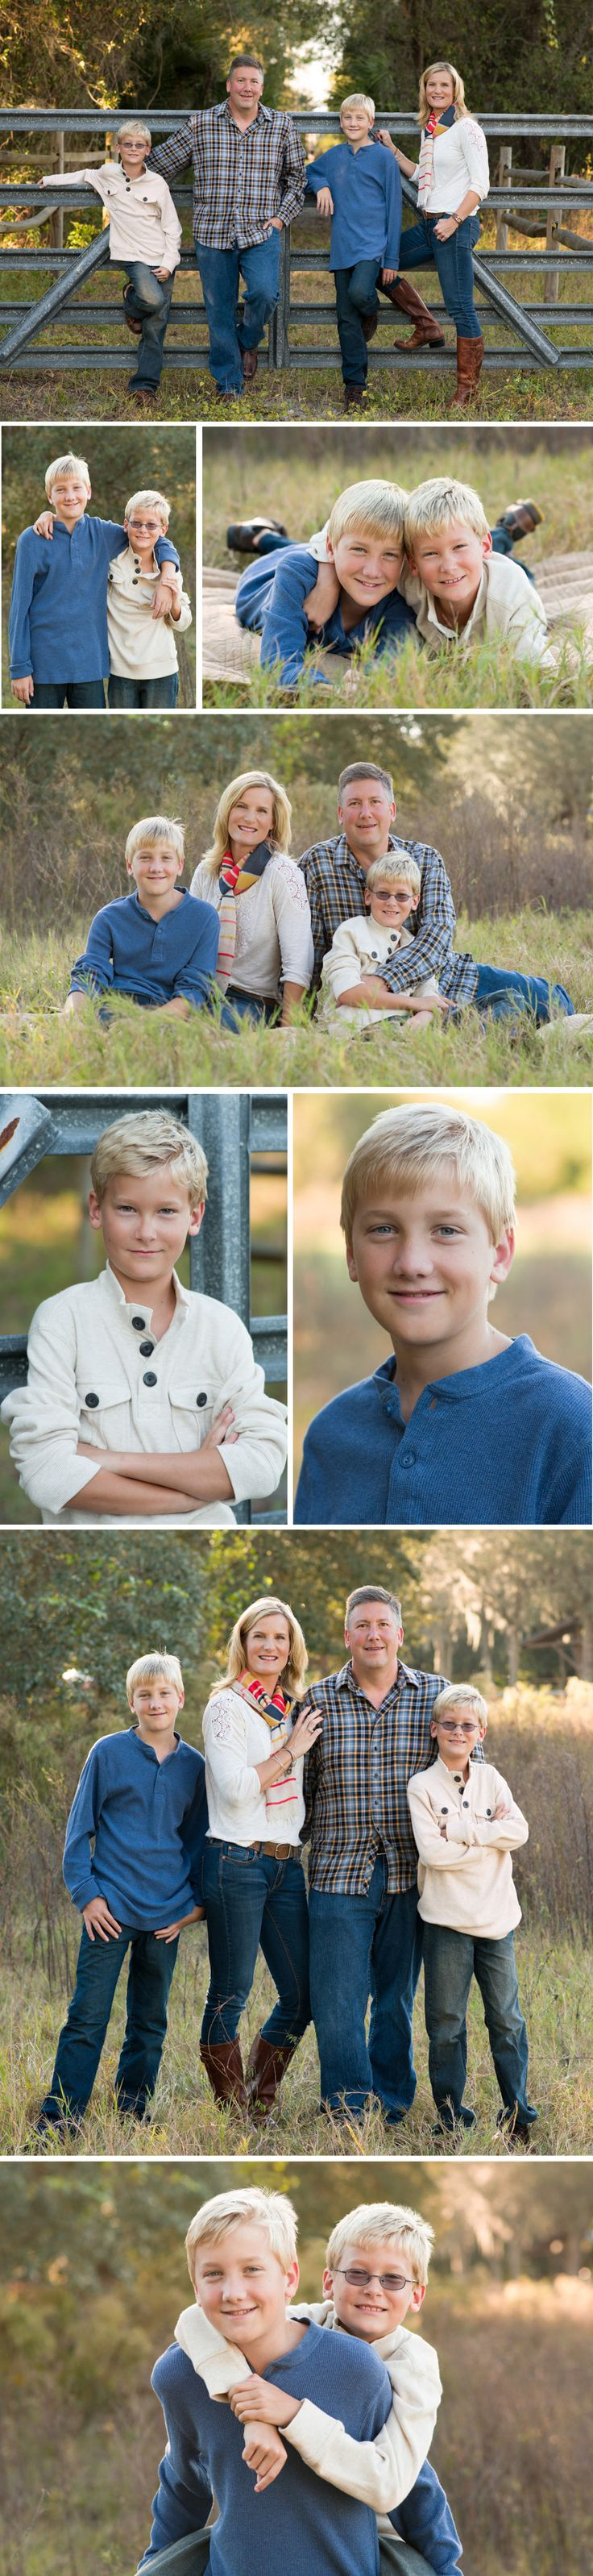 Family Photos Session by Tampa family photographer Sherri Kelly, Family photo poses, family older children, sibling photo poses